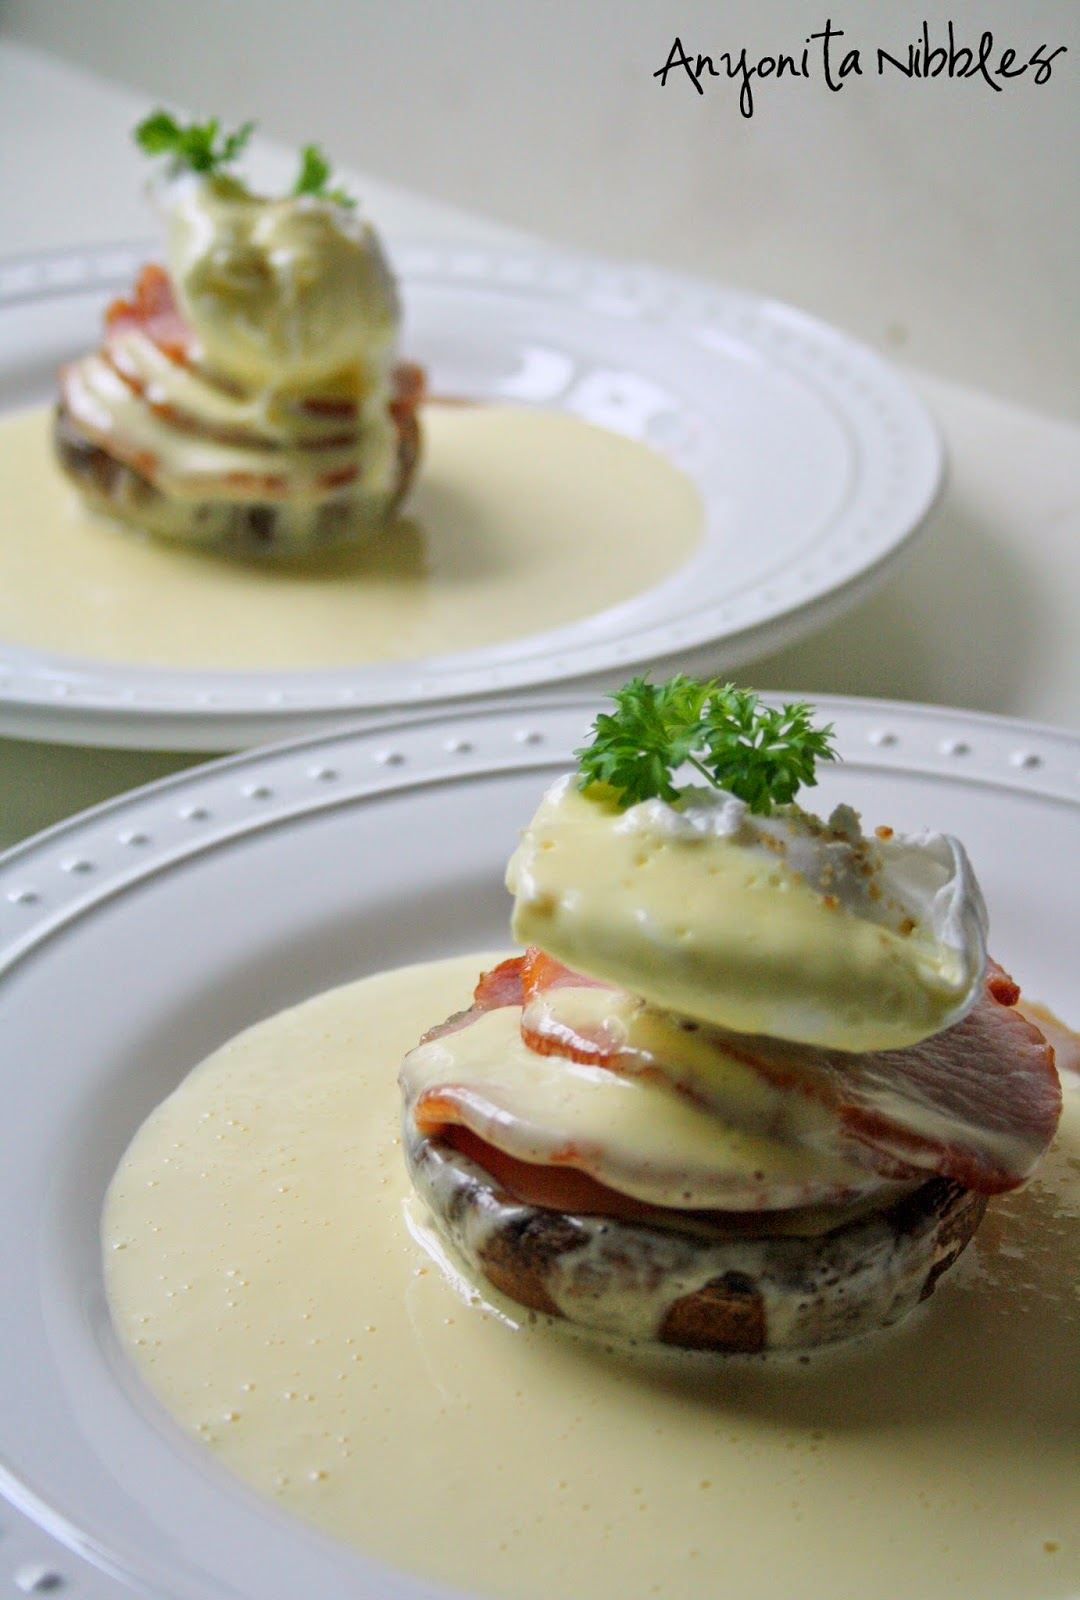 Using the blender to emulsify is a quick trick that results in foolproof Hollandaise sauce from Anyonita Nibbles